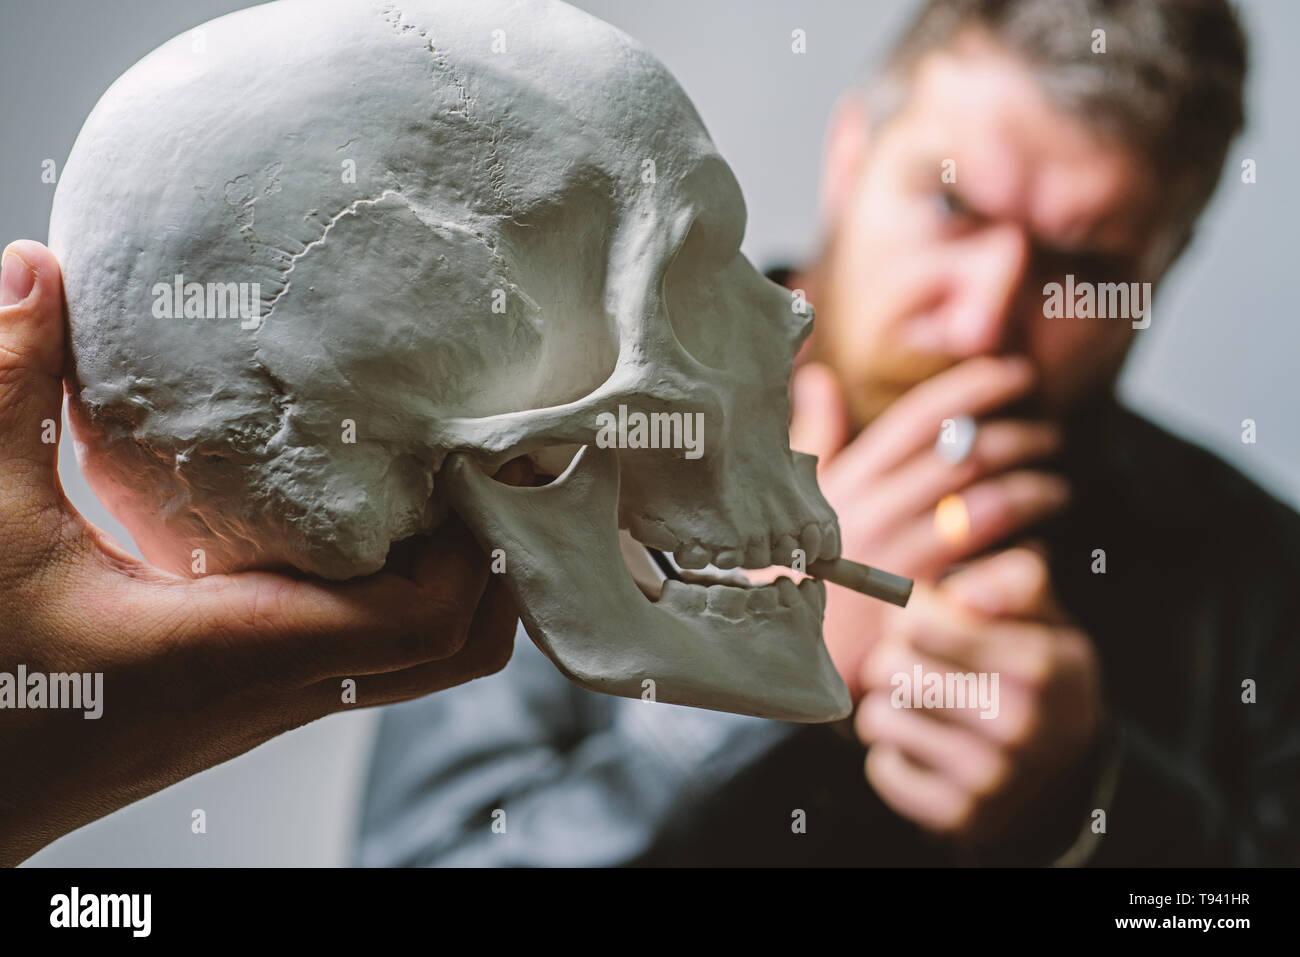 Man smoking cigarette near human skull symbol of death. Harmful habits. Smoking cause health damage and death. Destroy your health. Smoking is harmful. Habit to smoke tobacco bring harm to your body. - Stock Image